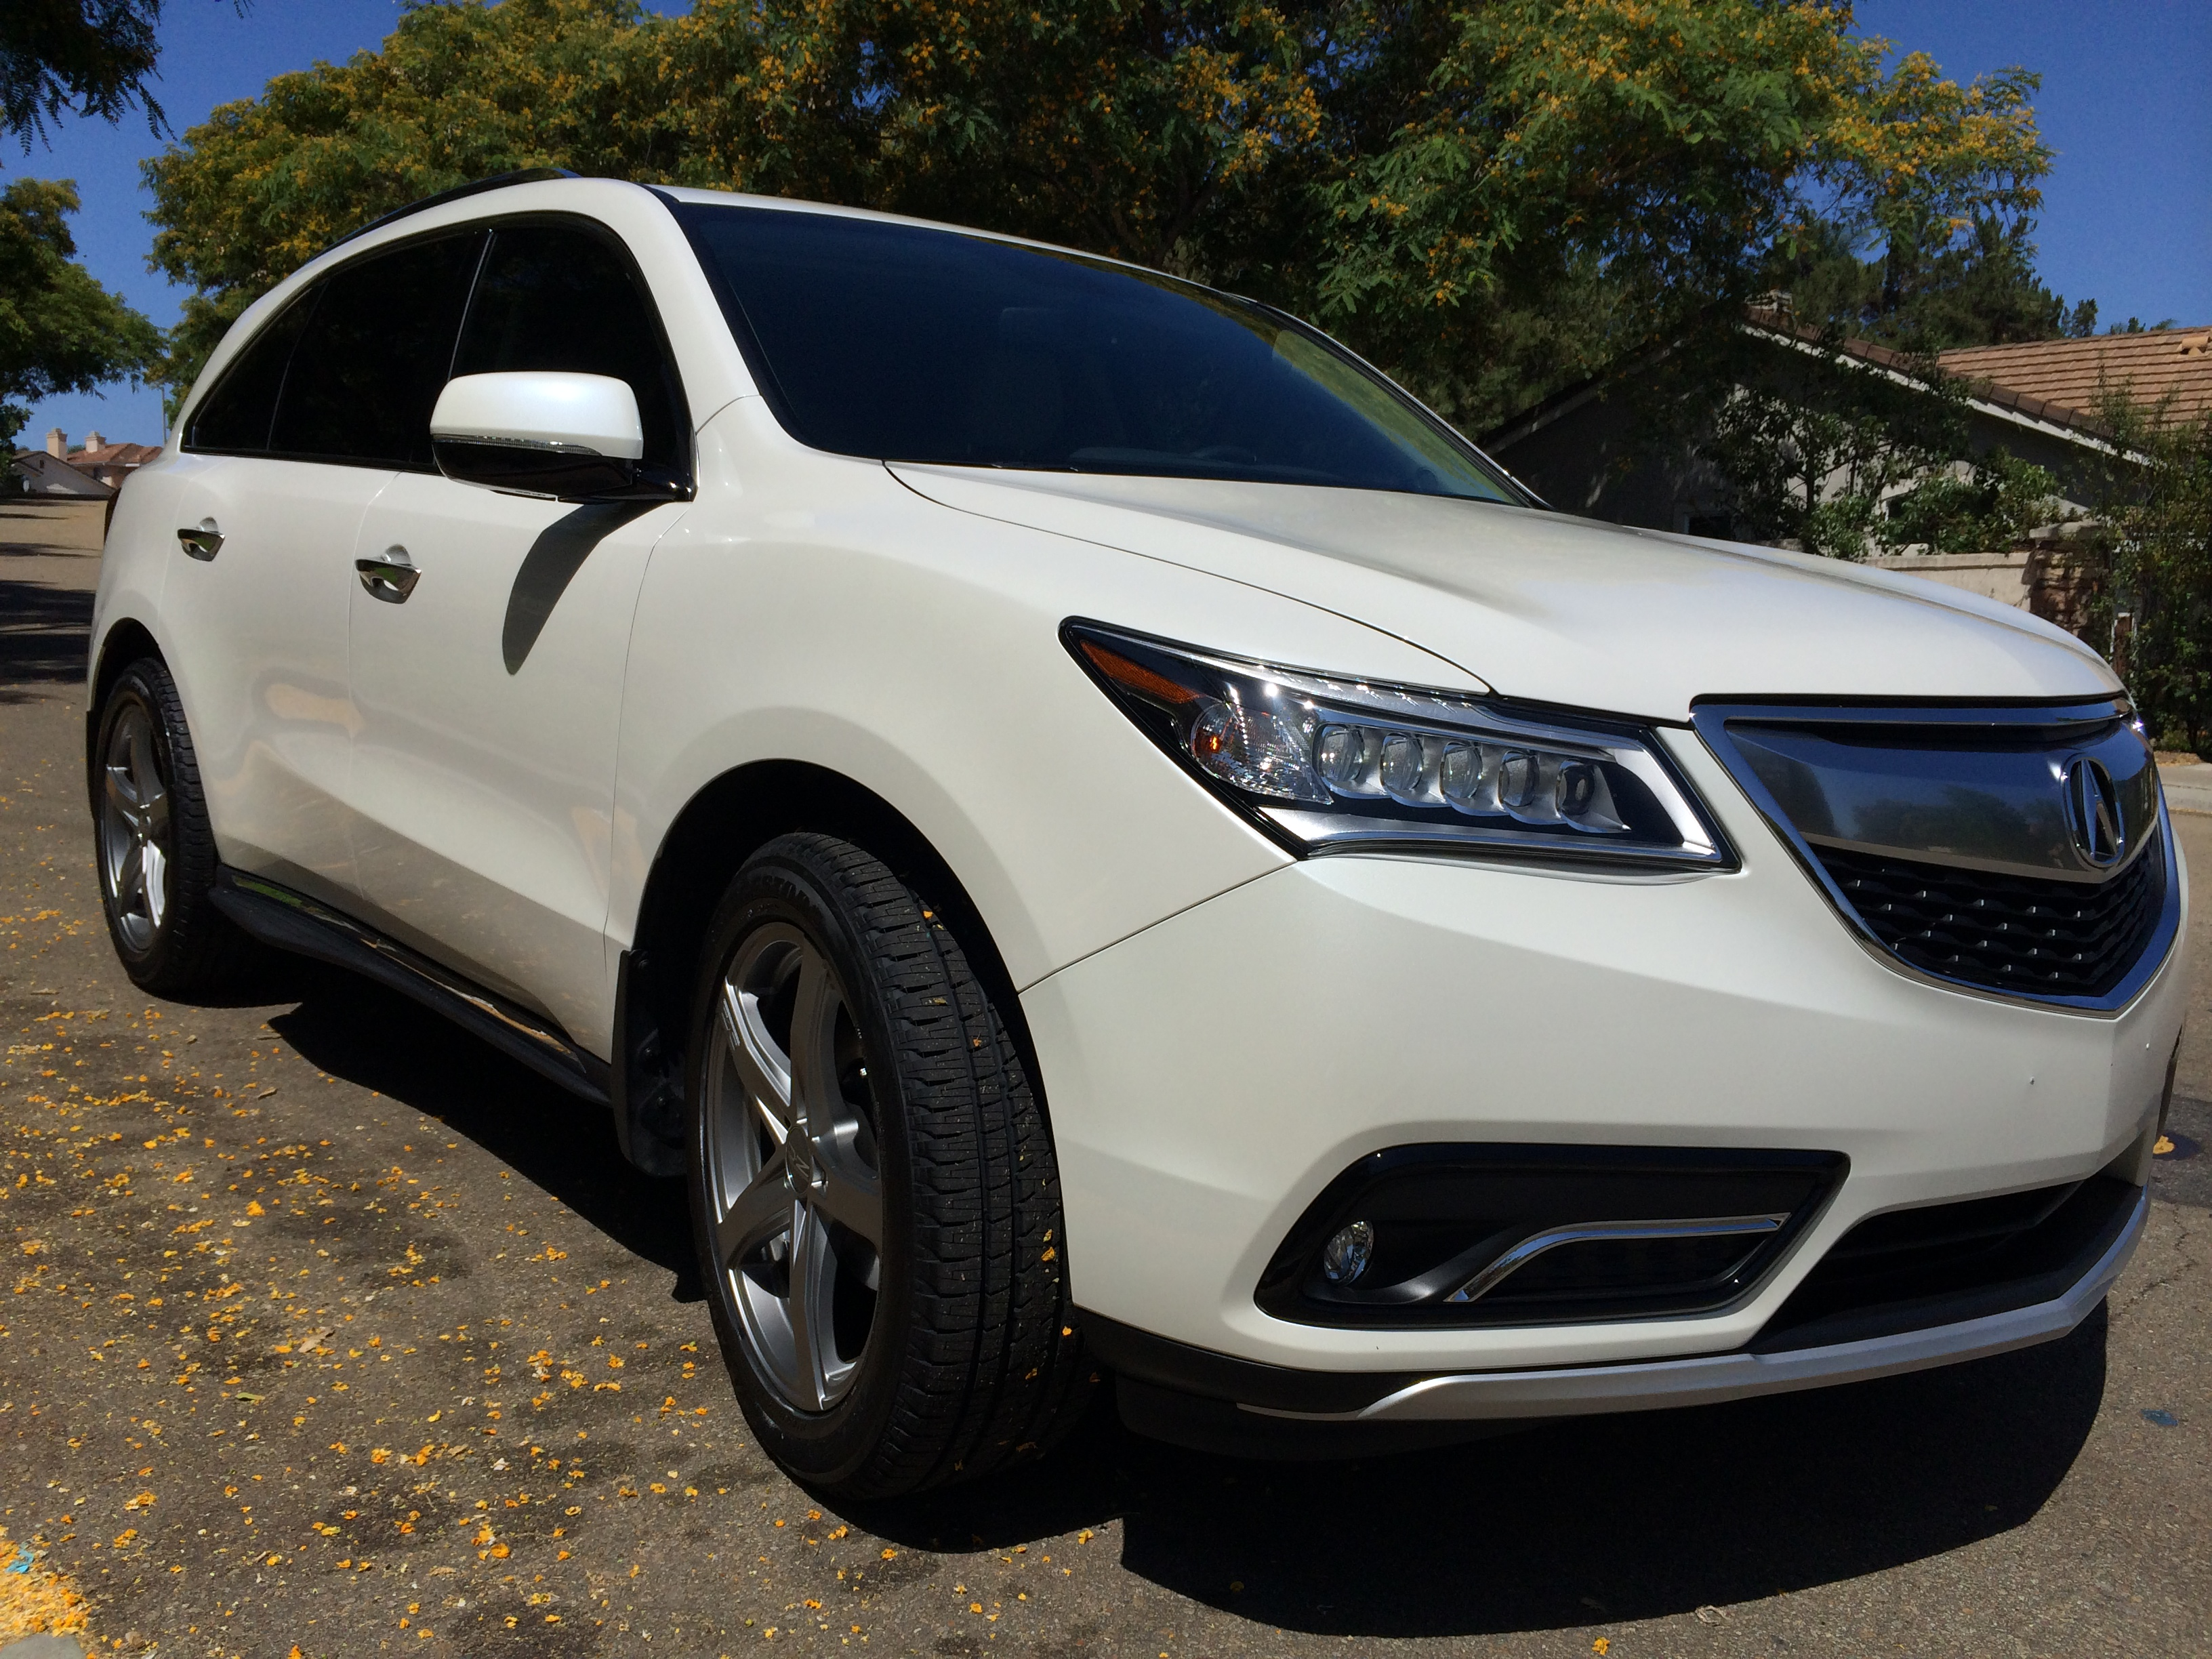 Post Pics Of MDX With Inch Wheel Setup Acura MDX Forum - Acura mdx 20 inch wheels